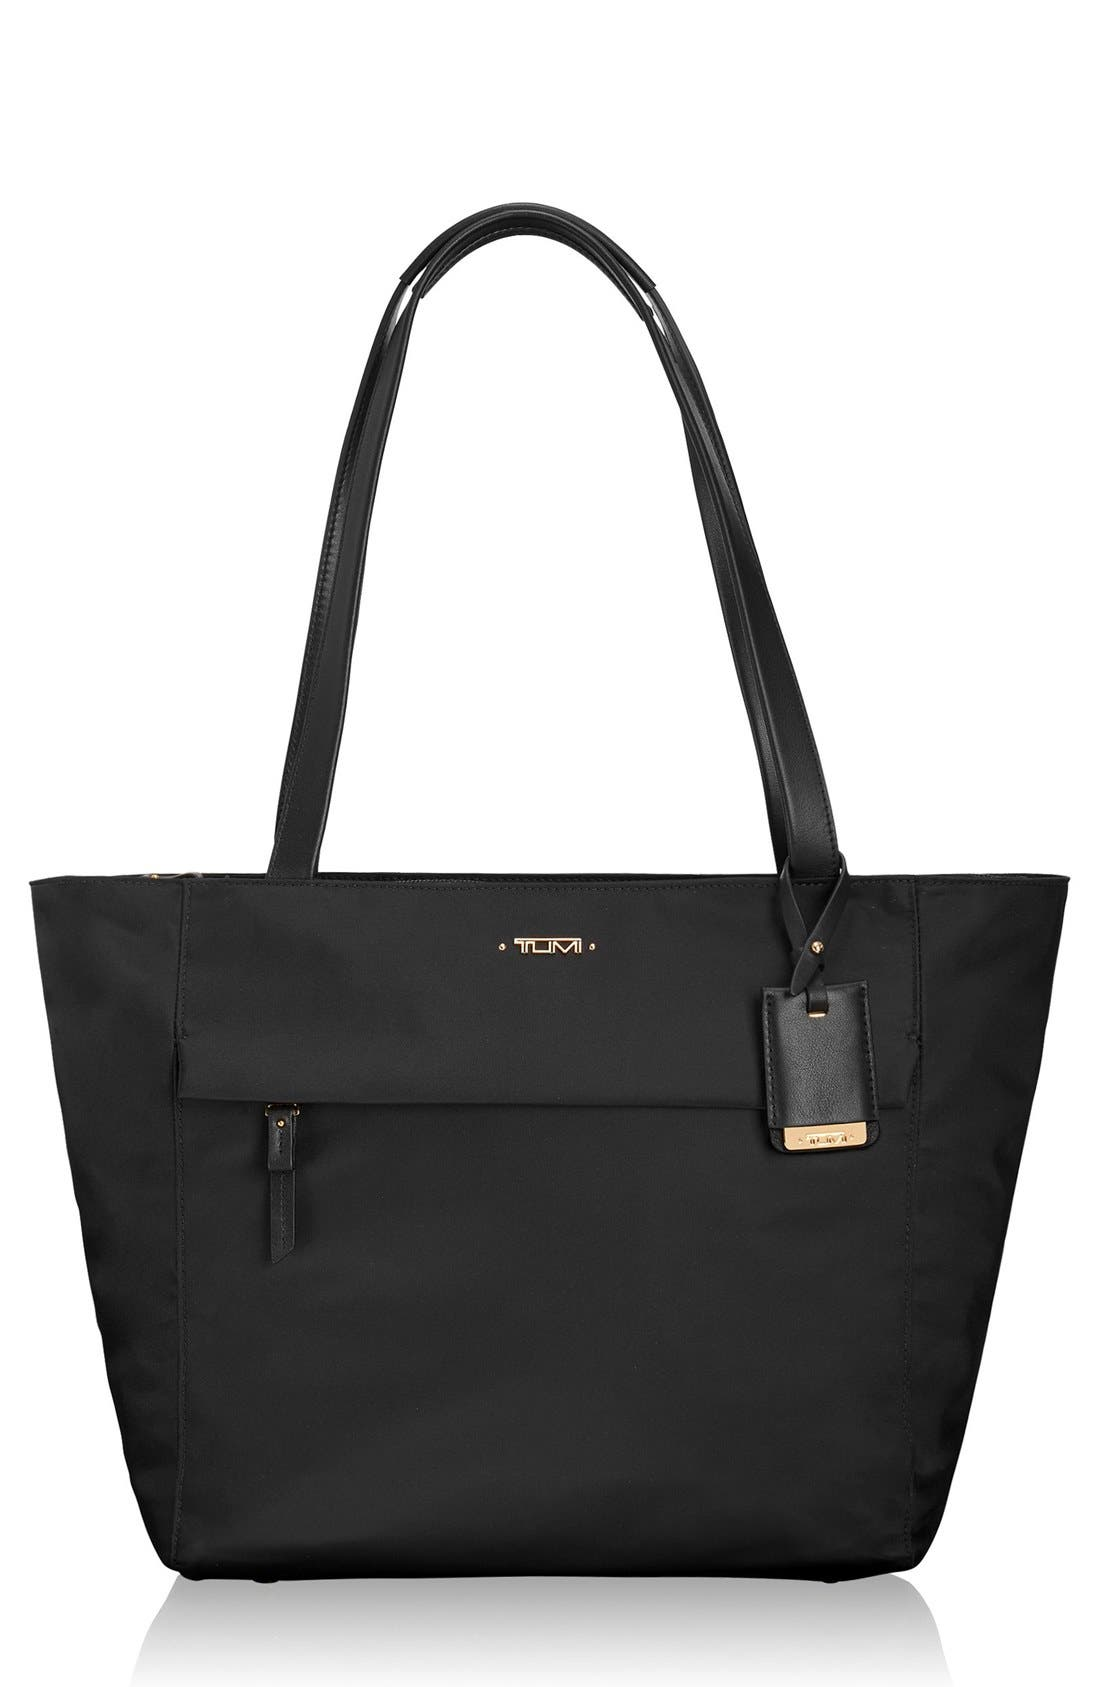 Alternate Image 1 Selected - Tumi 'Small M-Tote' Nylon Tote